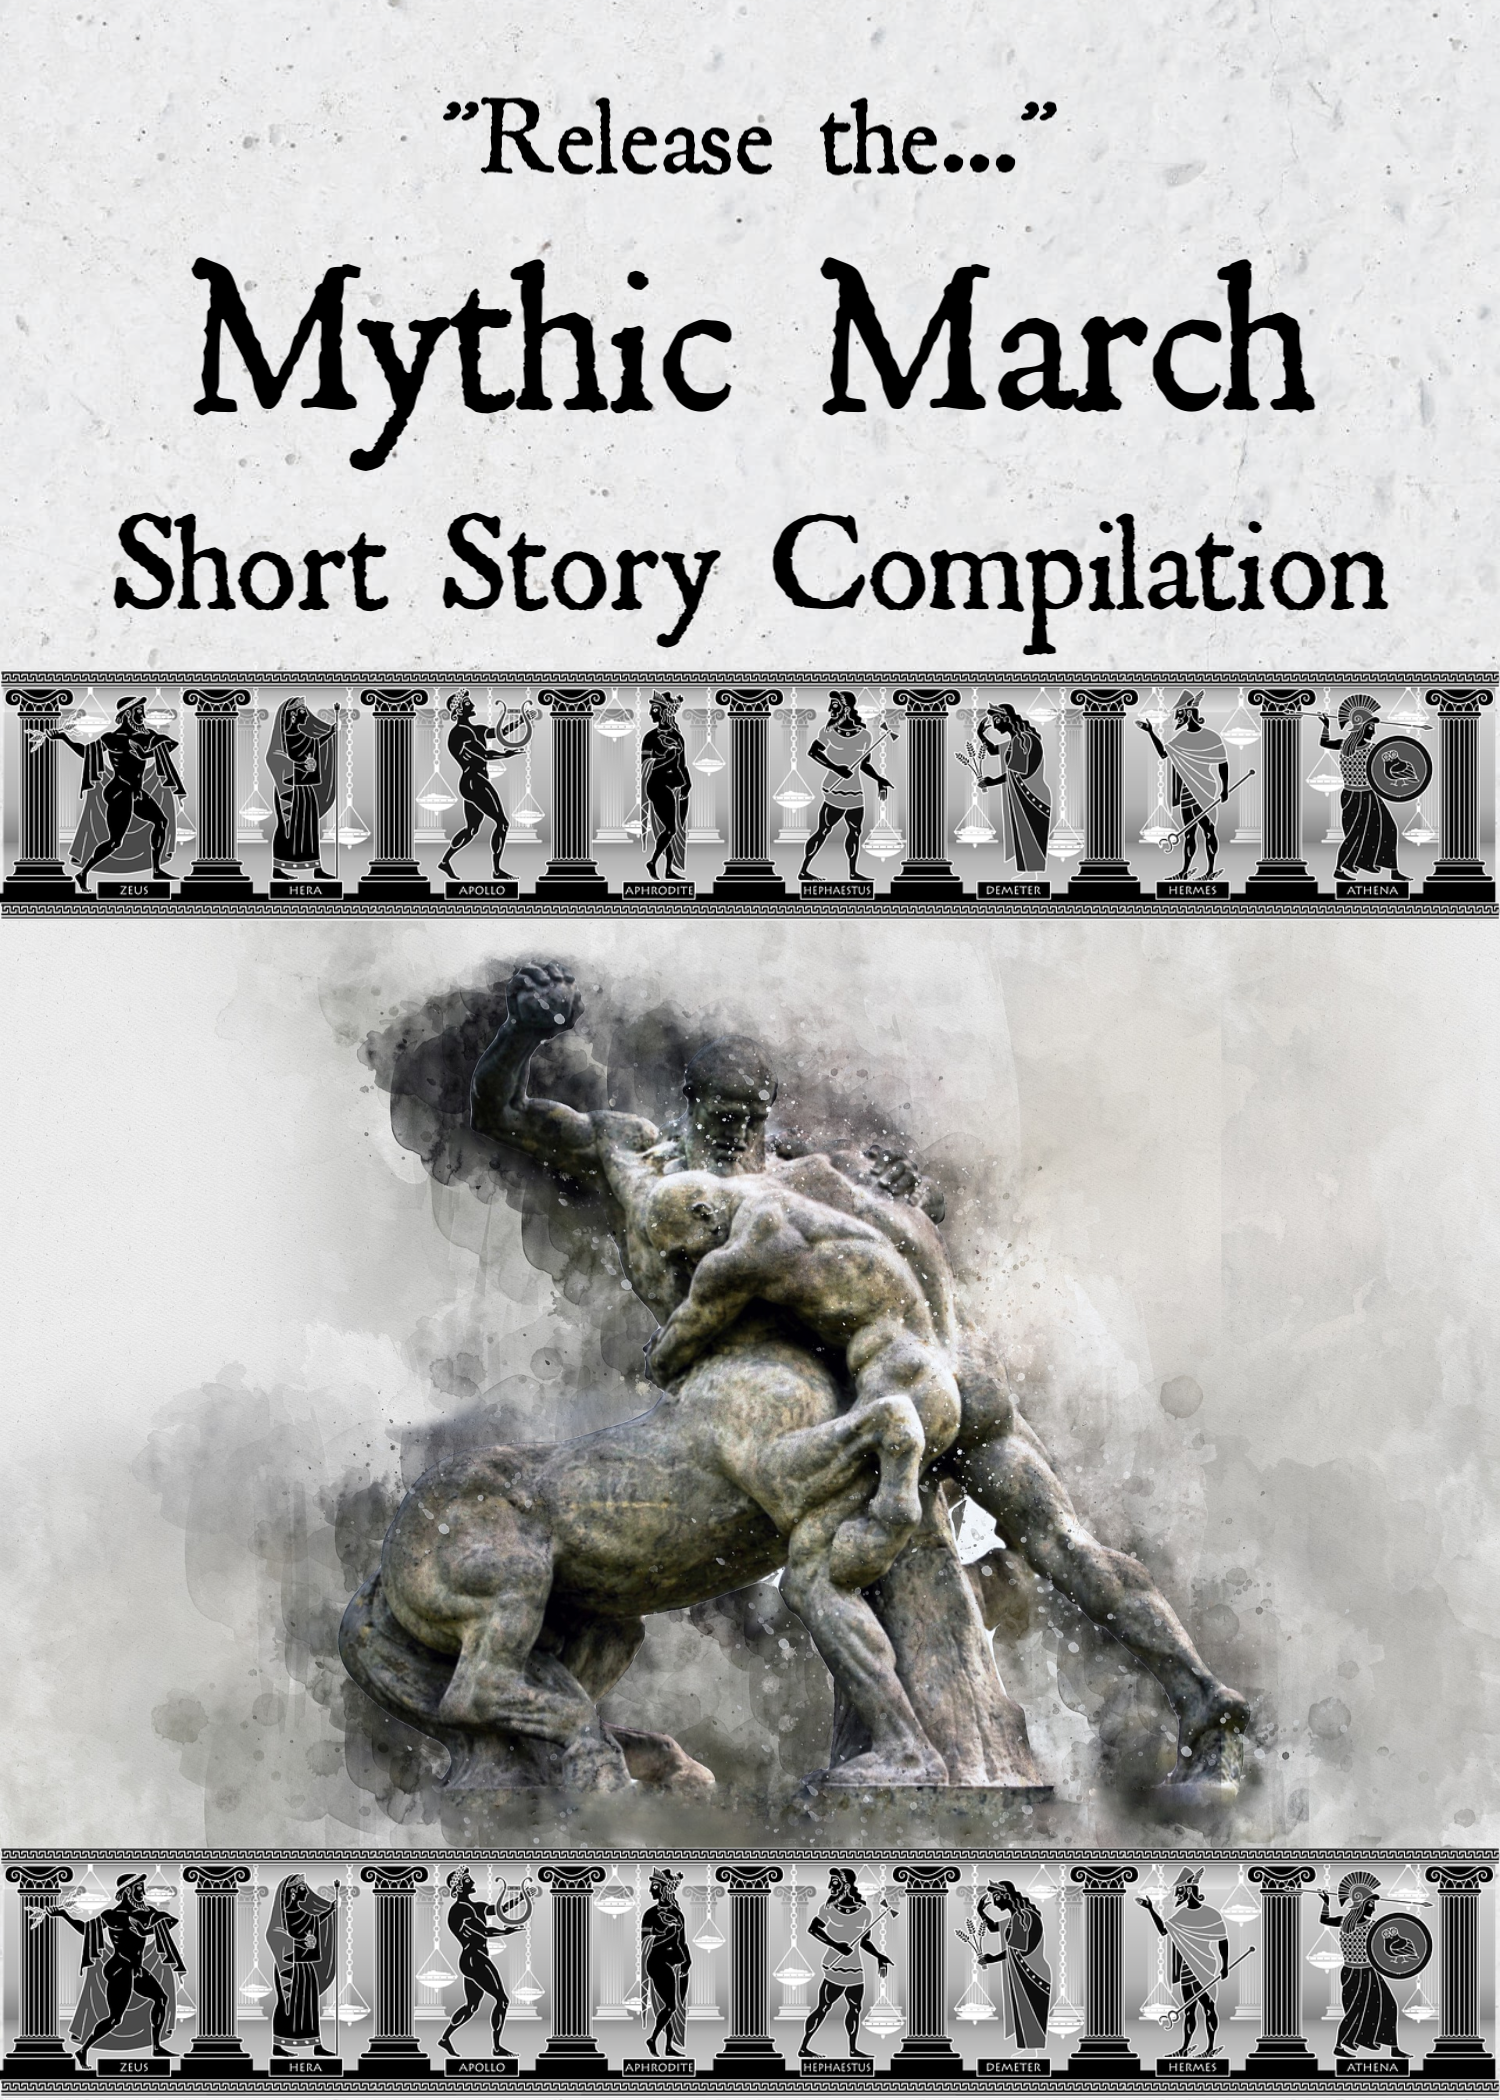 Mythical March Short Story Compilation.png